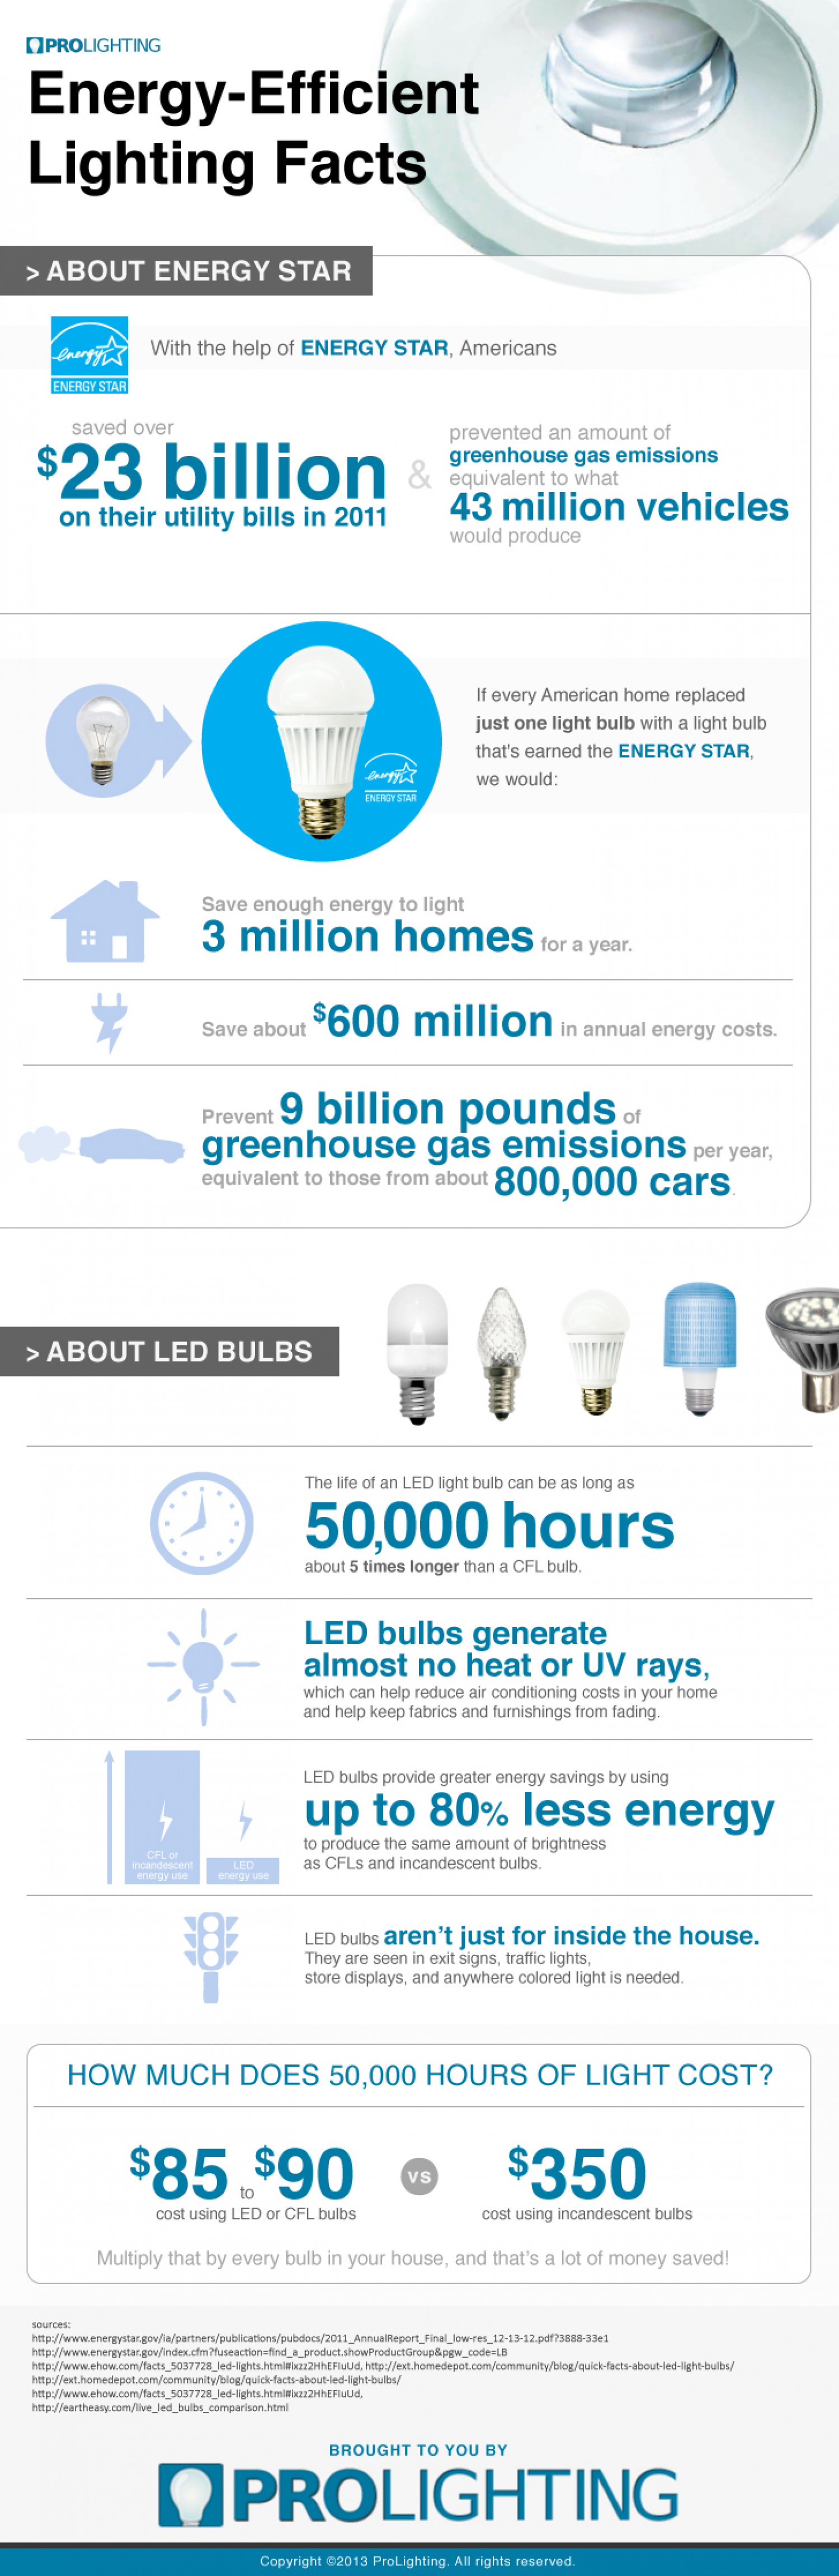 Energy Efficient Lighting Facts Infographic